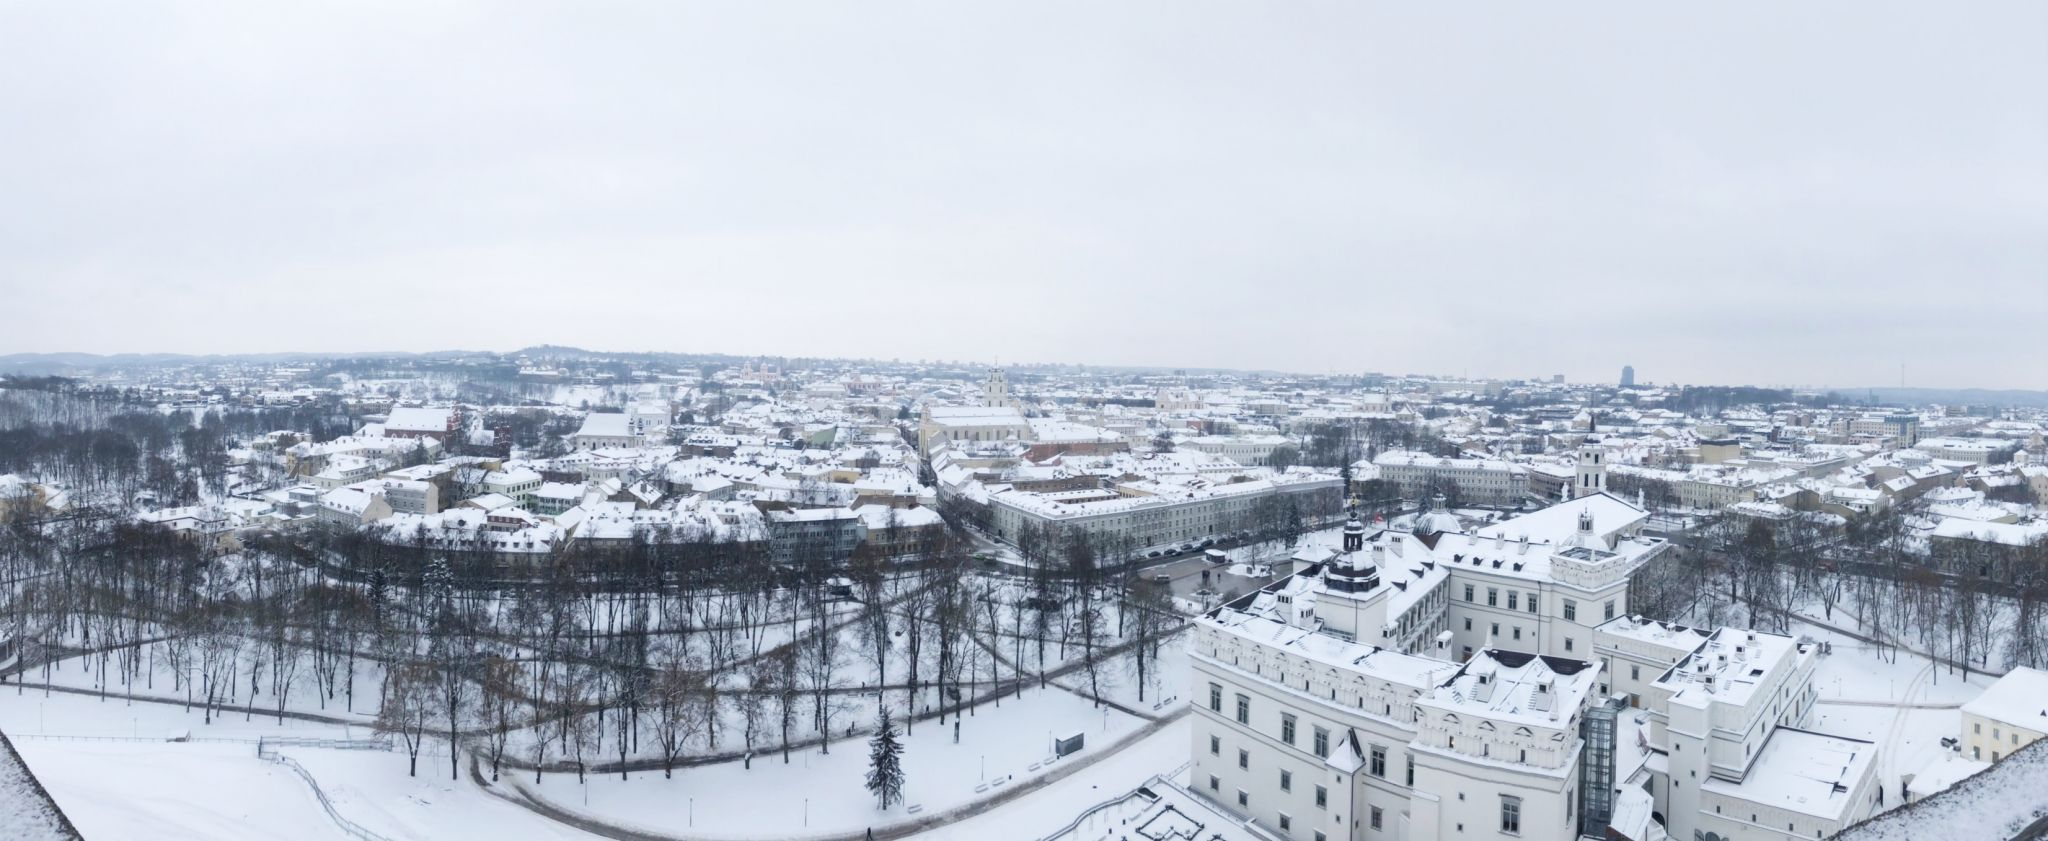 A Very Snowy Weekend In Vilnius